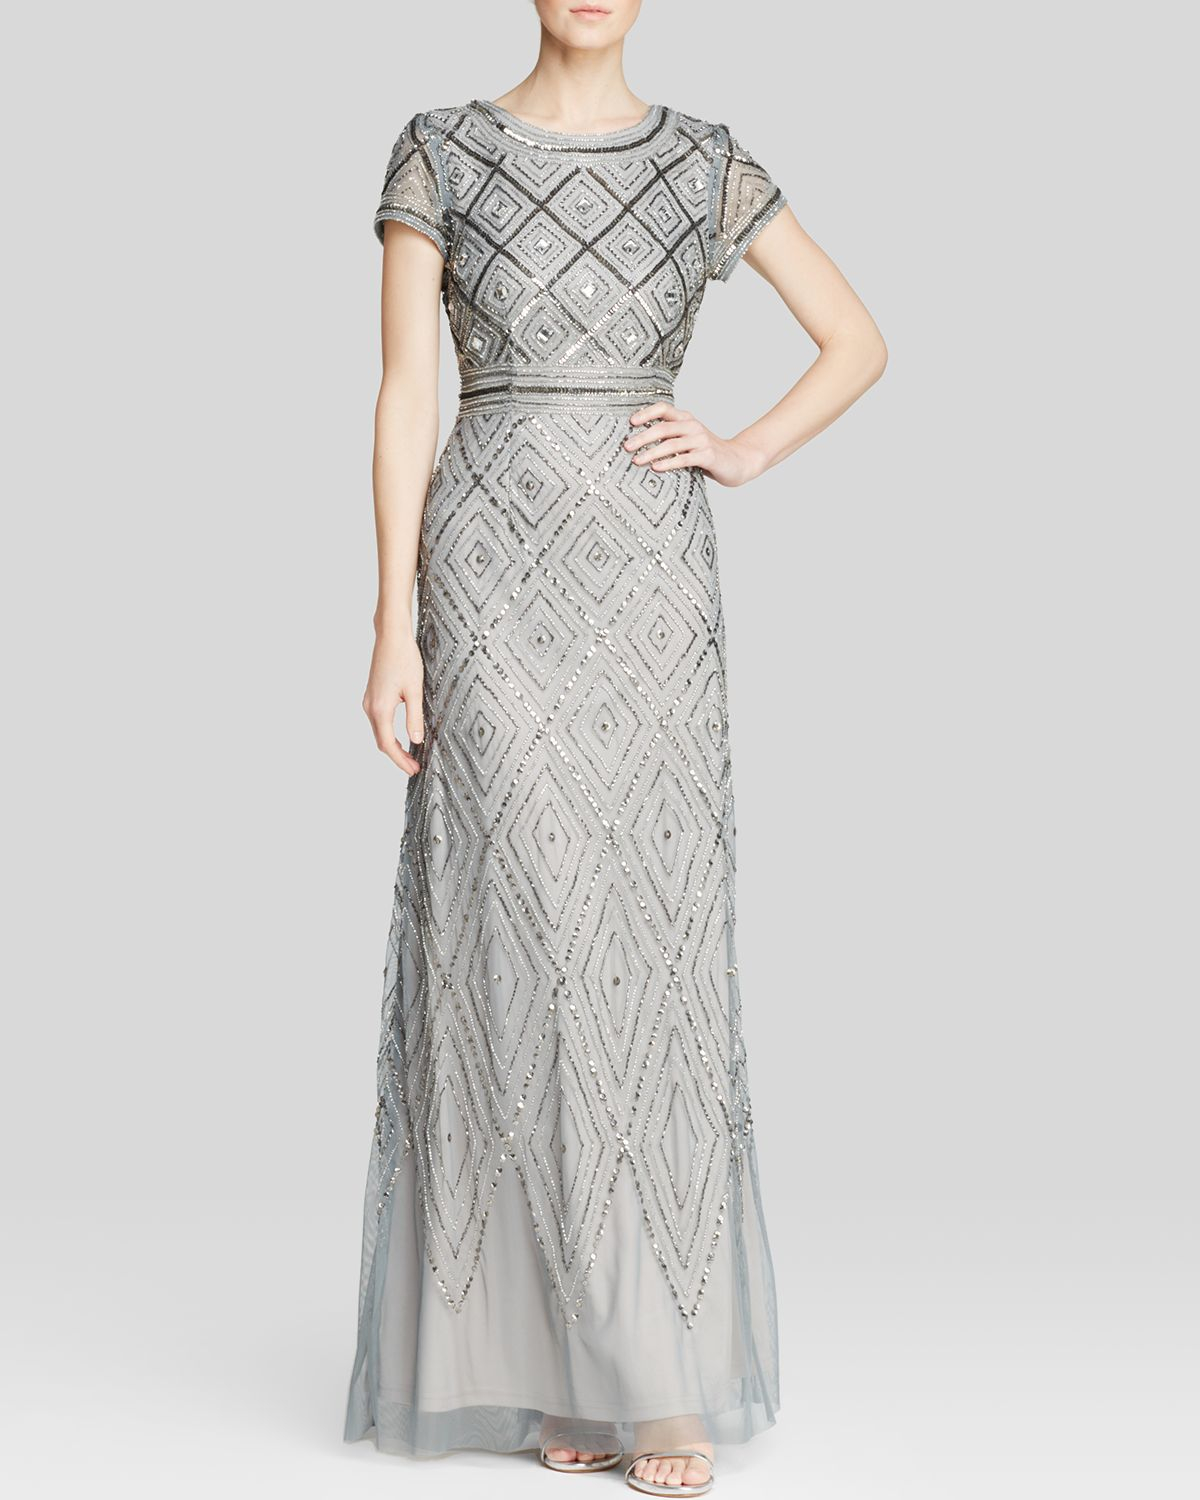 b70d90a2d2e Lyst - Adrianna Papell Gown - Short Sleeve Geometric Beaded in Gray